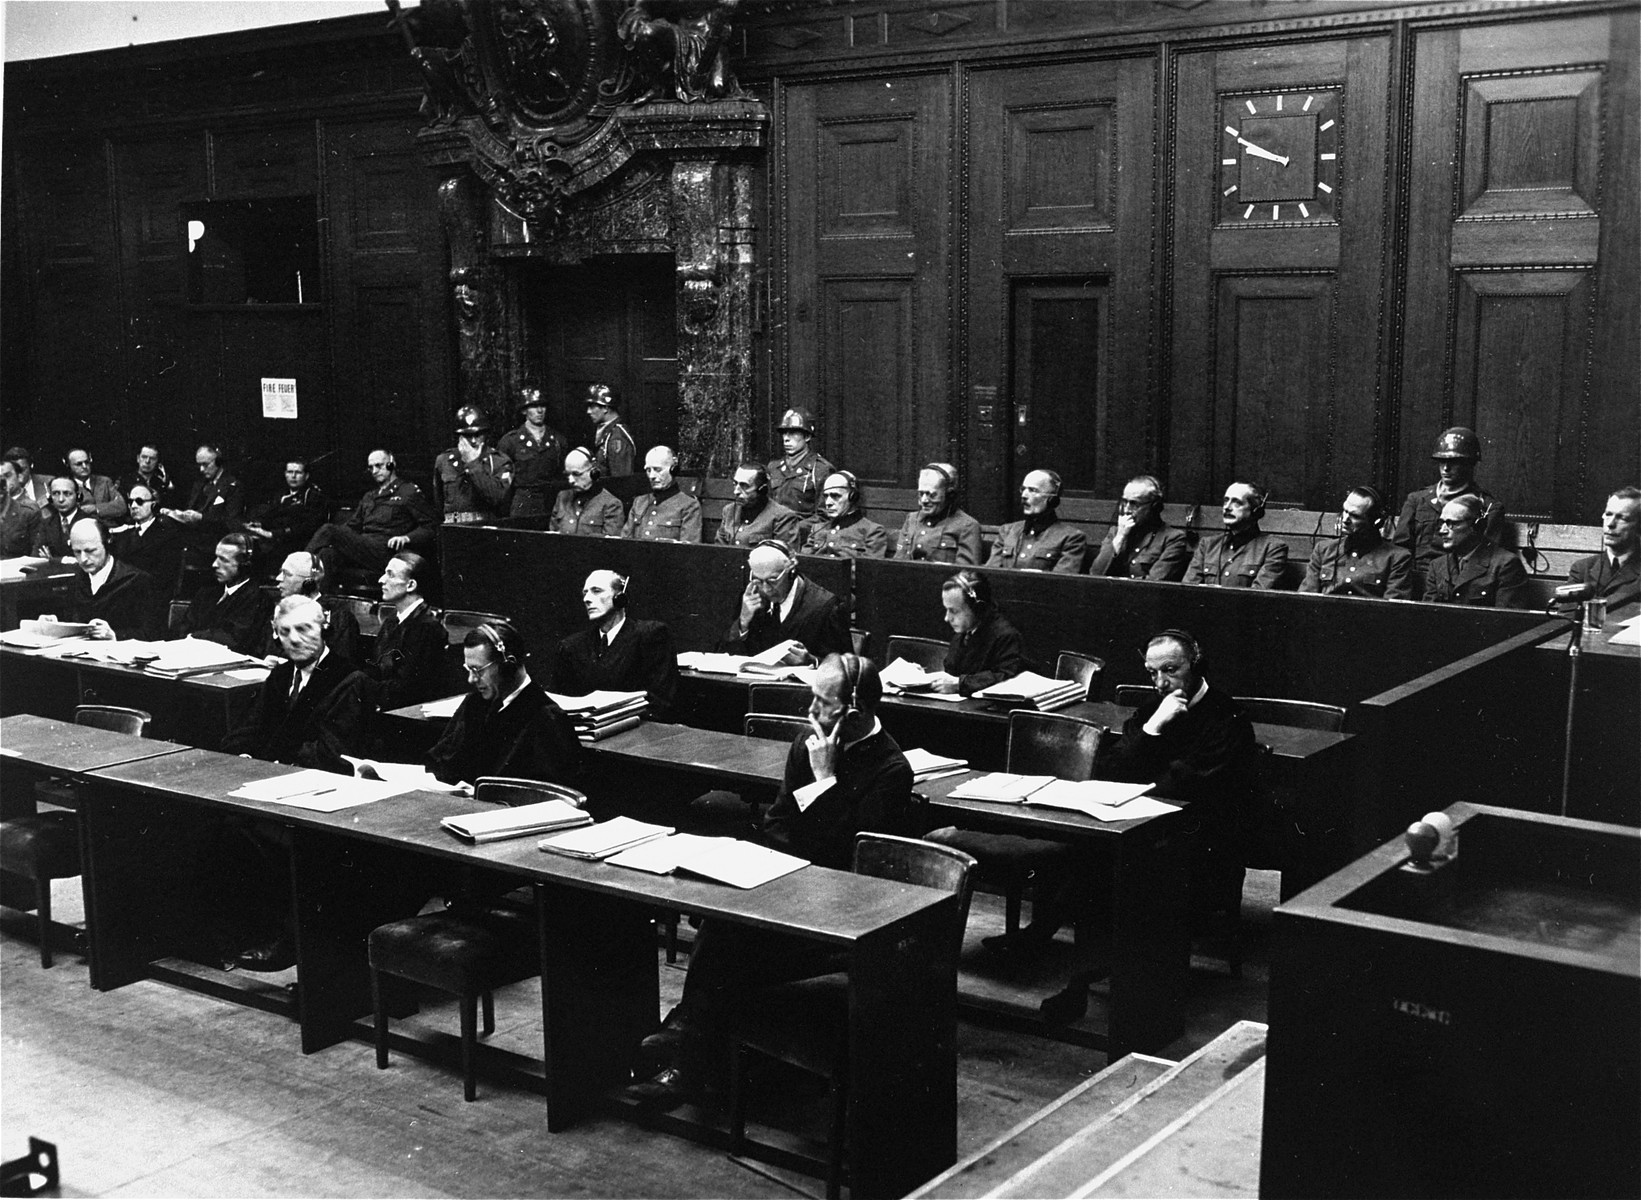 The defendants in the dock and their lawyers follow the proceedings of the Hostage Case.